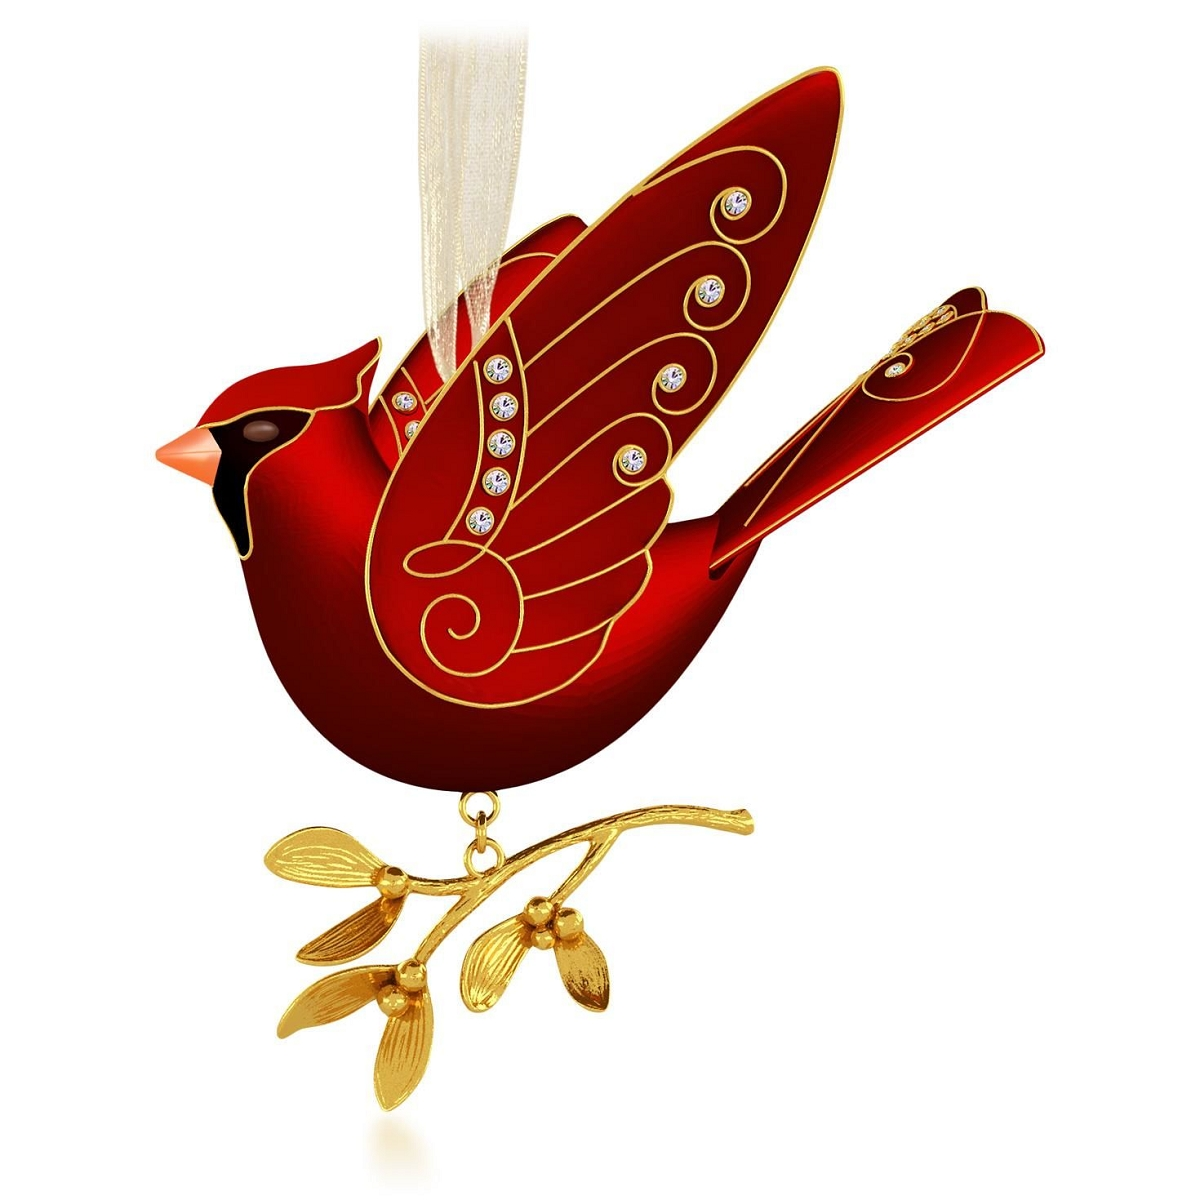 2015 ruby red cardinal hallmark keepsake ornament hooked on hallmark ornaments